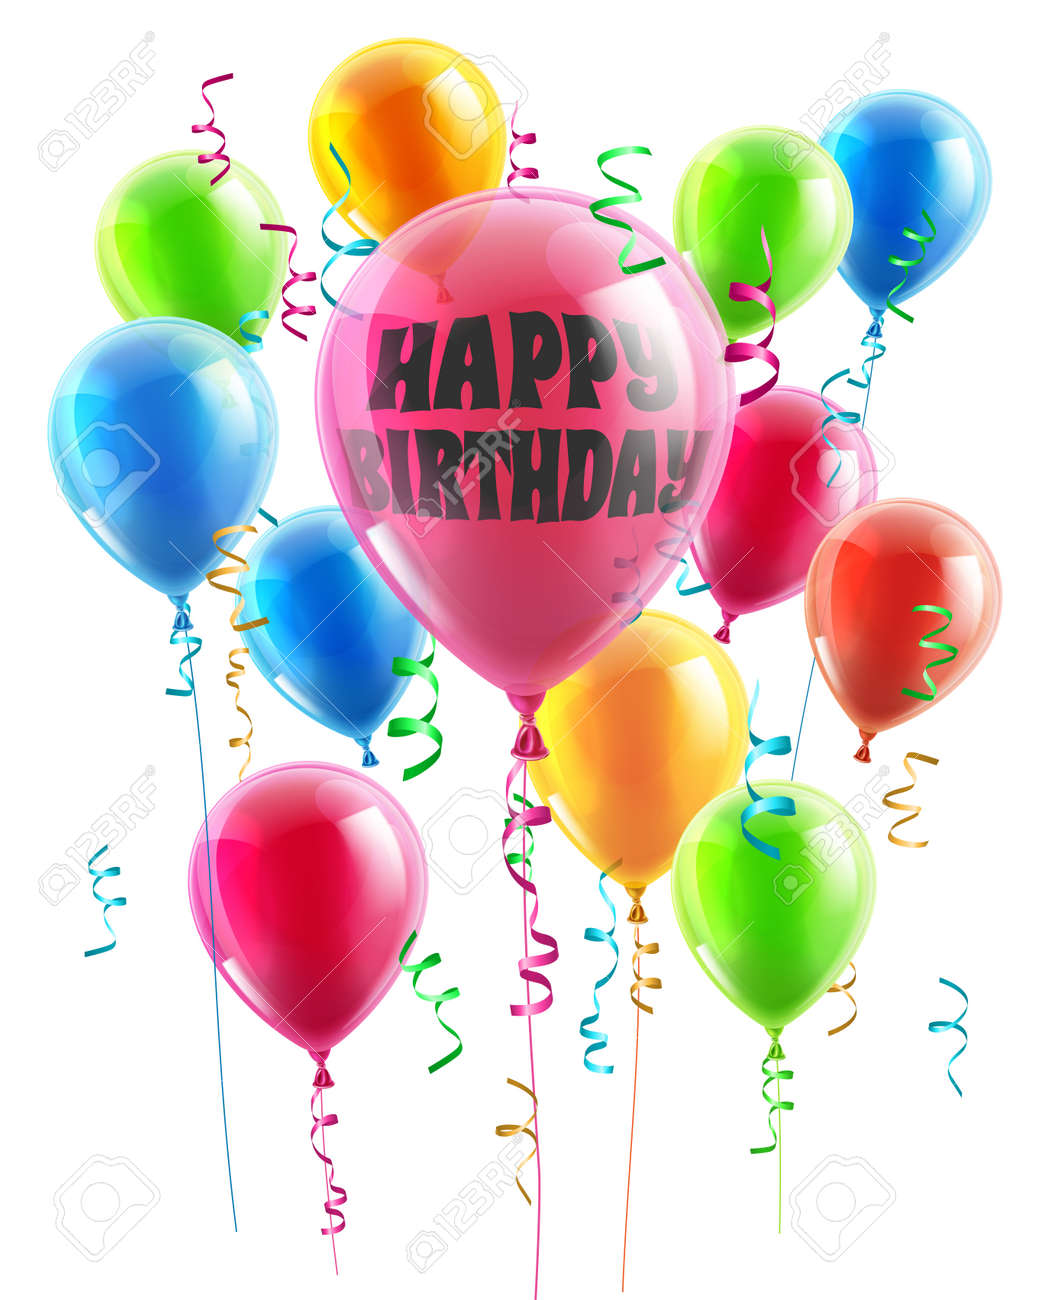 Happy Birthday Balloons Stock Photos & Pictures. Royalty Free ...